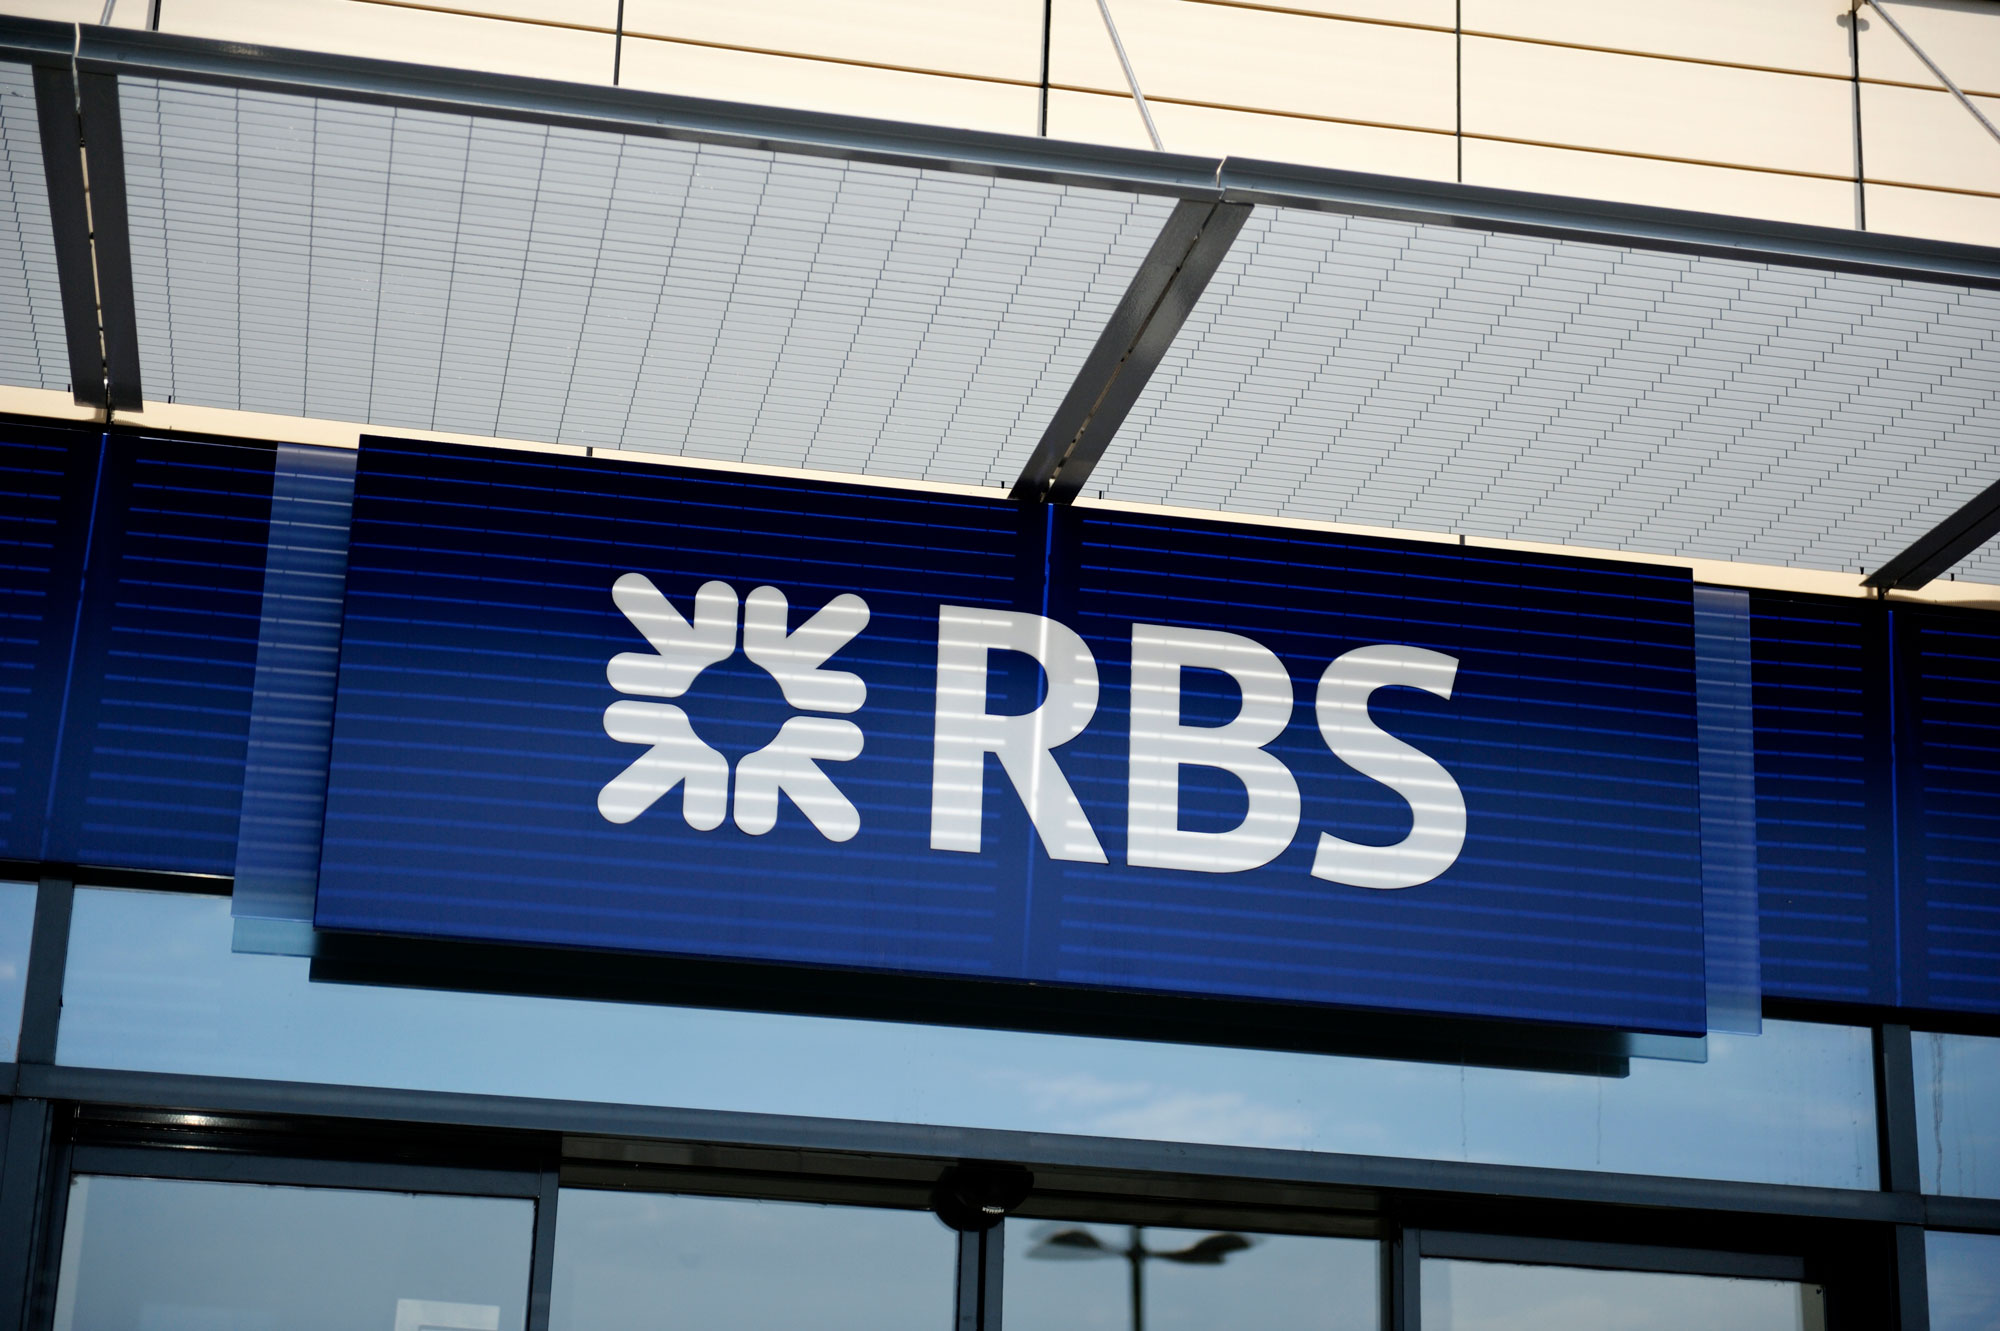 The Appointment Of Alison Rose To the Position Of CEO At The Royal Bank Of Scotland